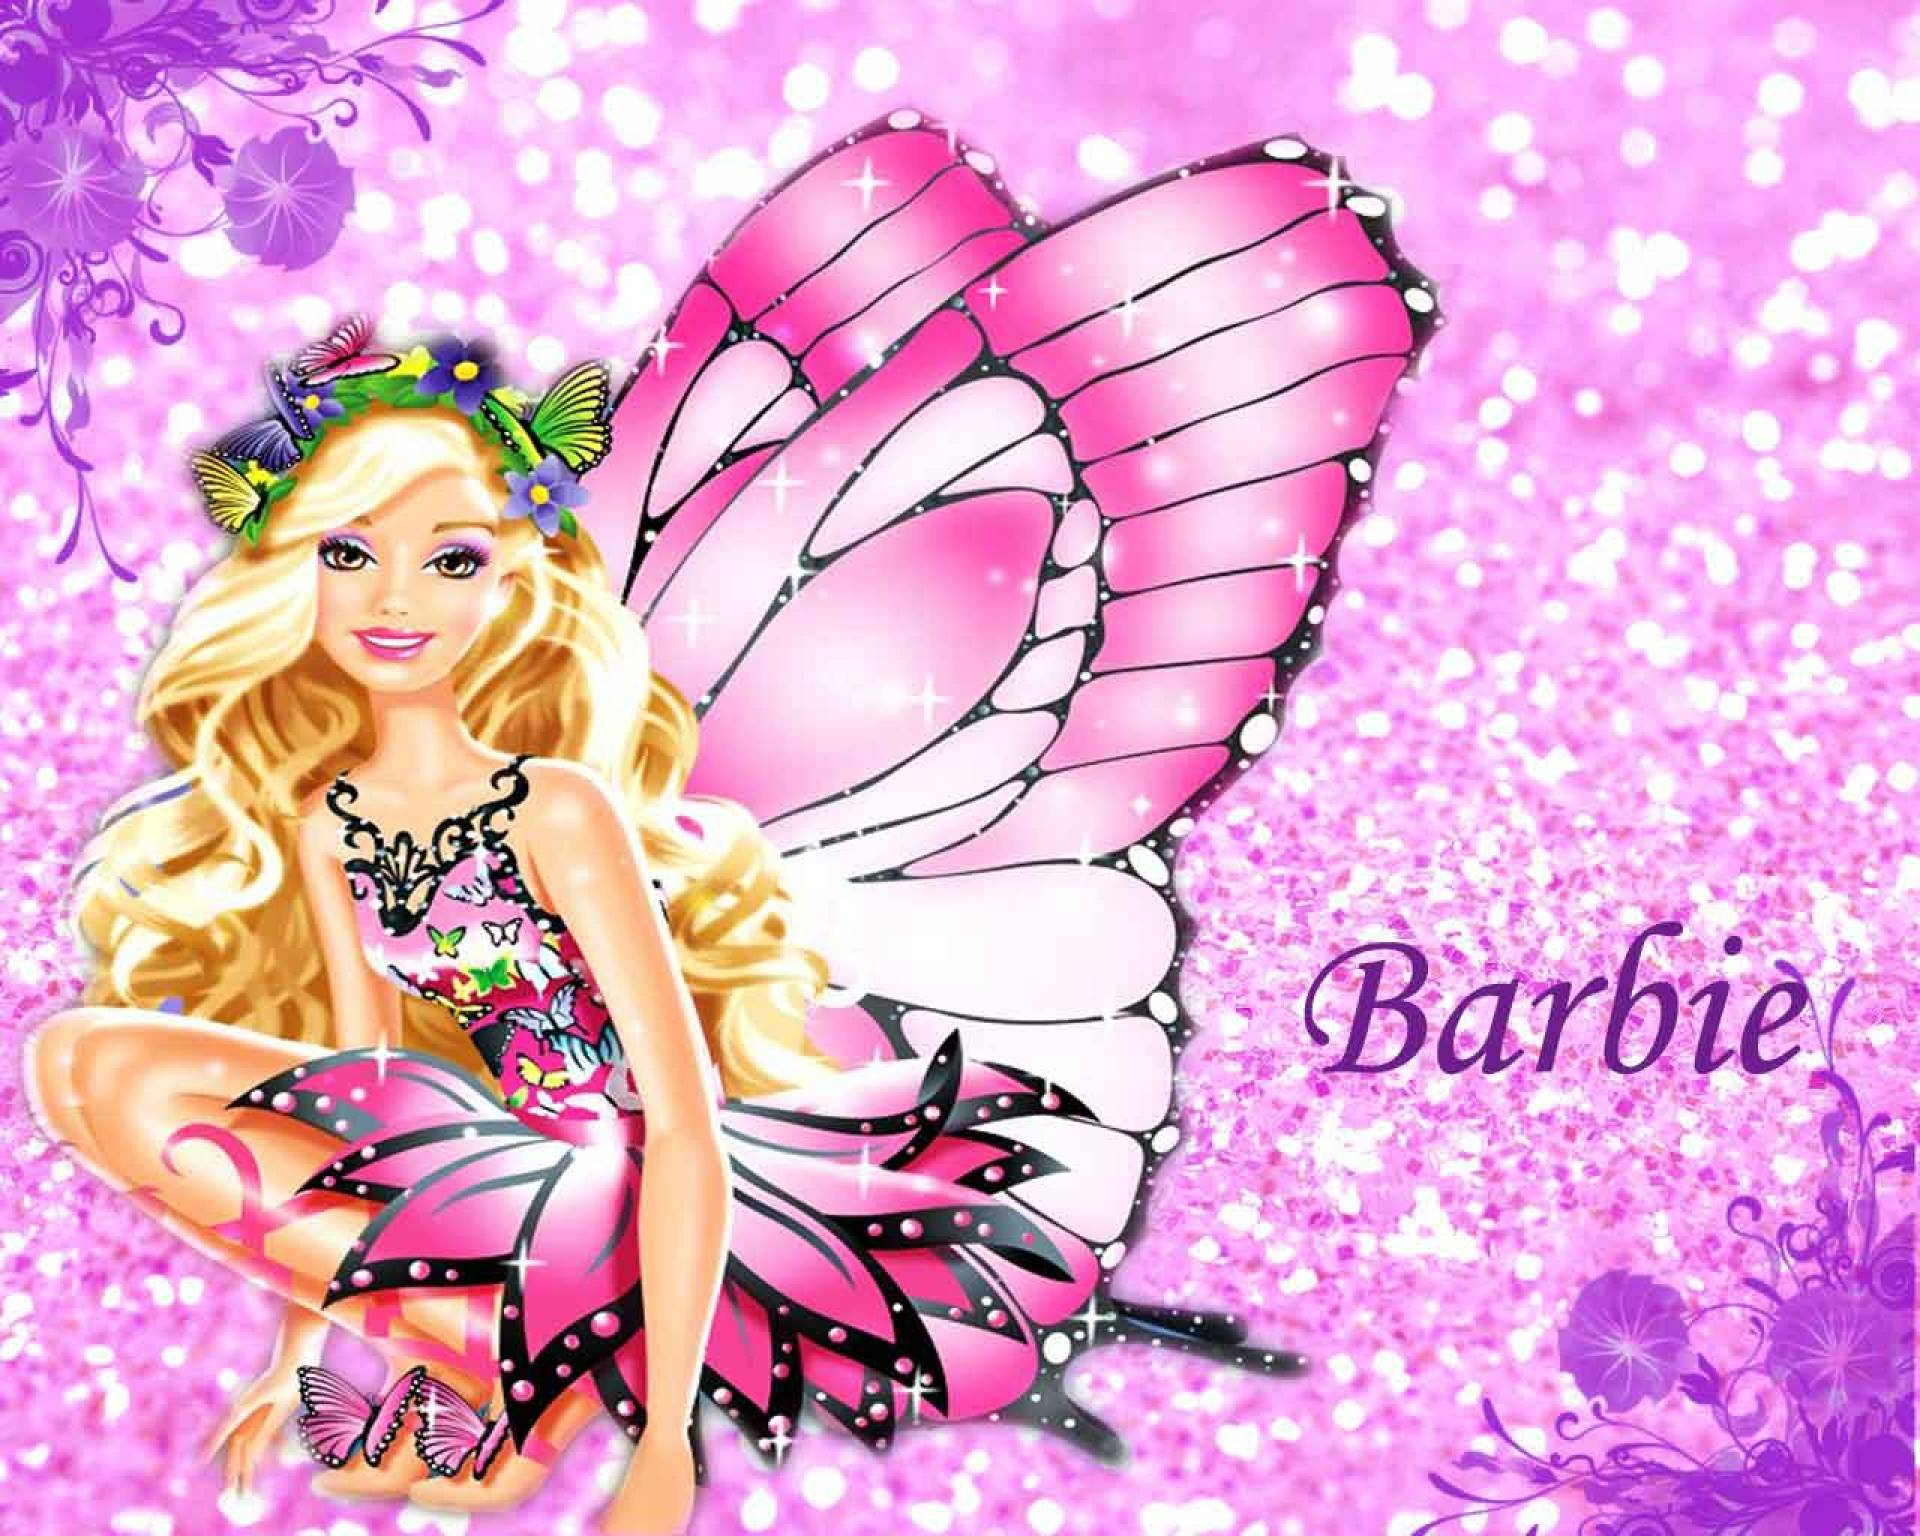 Cute Barbie Hd Wallpapers Top 80 Best Beautiful Cute Barbie Doll Hd Wallpapers